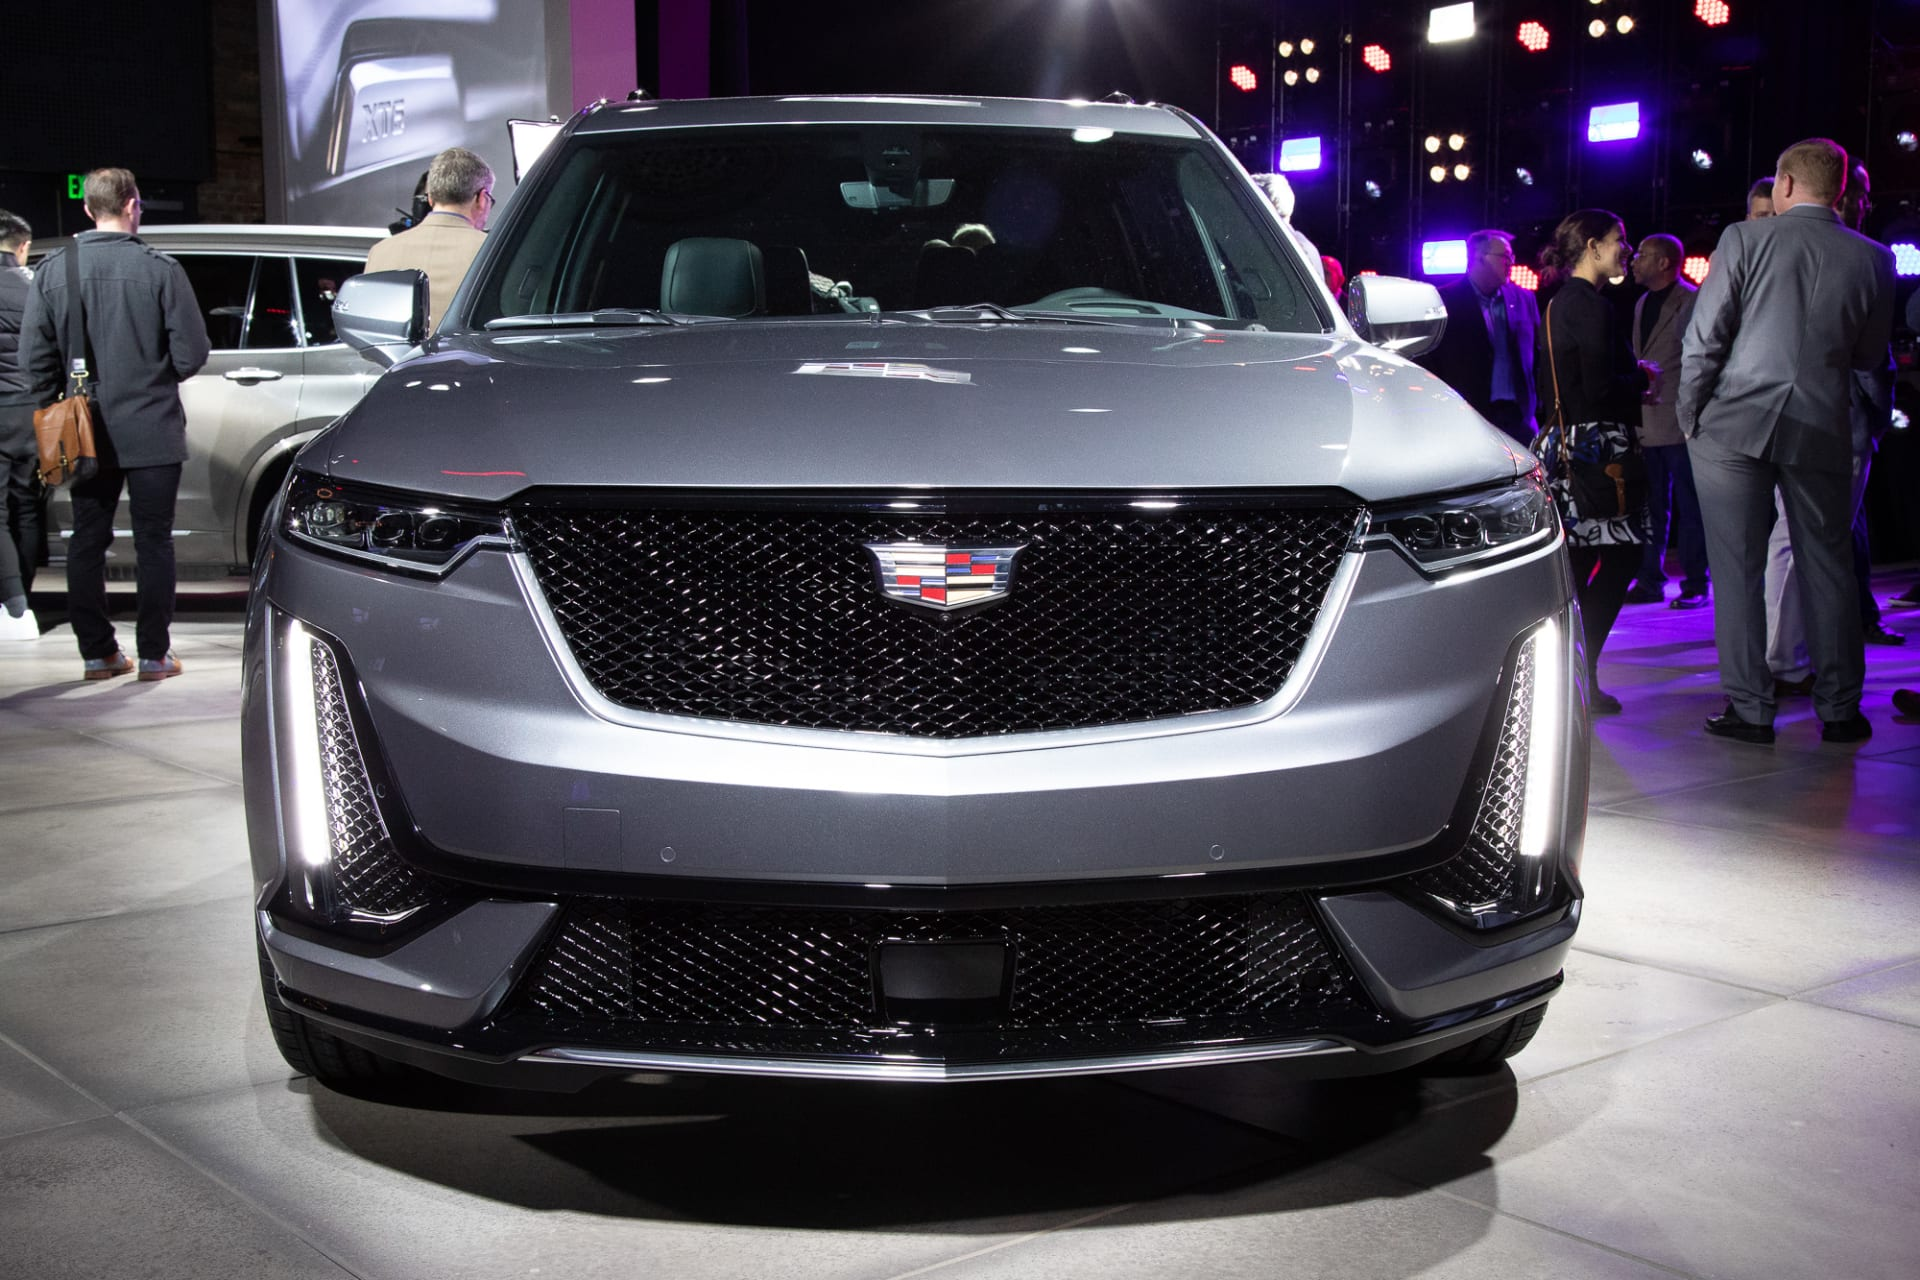 2020 Detroit Auto Show.10 Biggest 2019 Detroit Auto Show Stories 2020 Cadillac Xt6